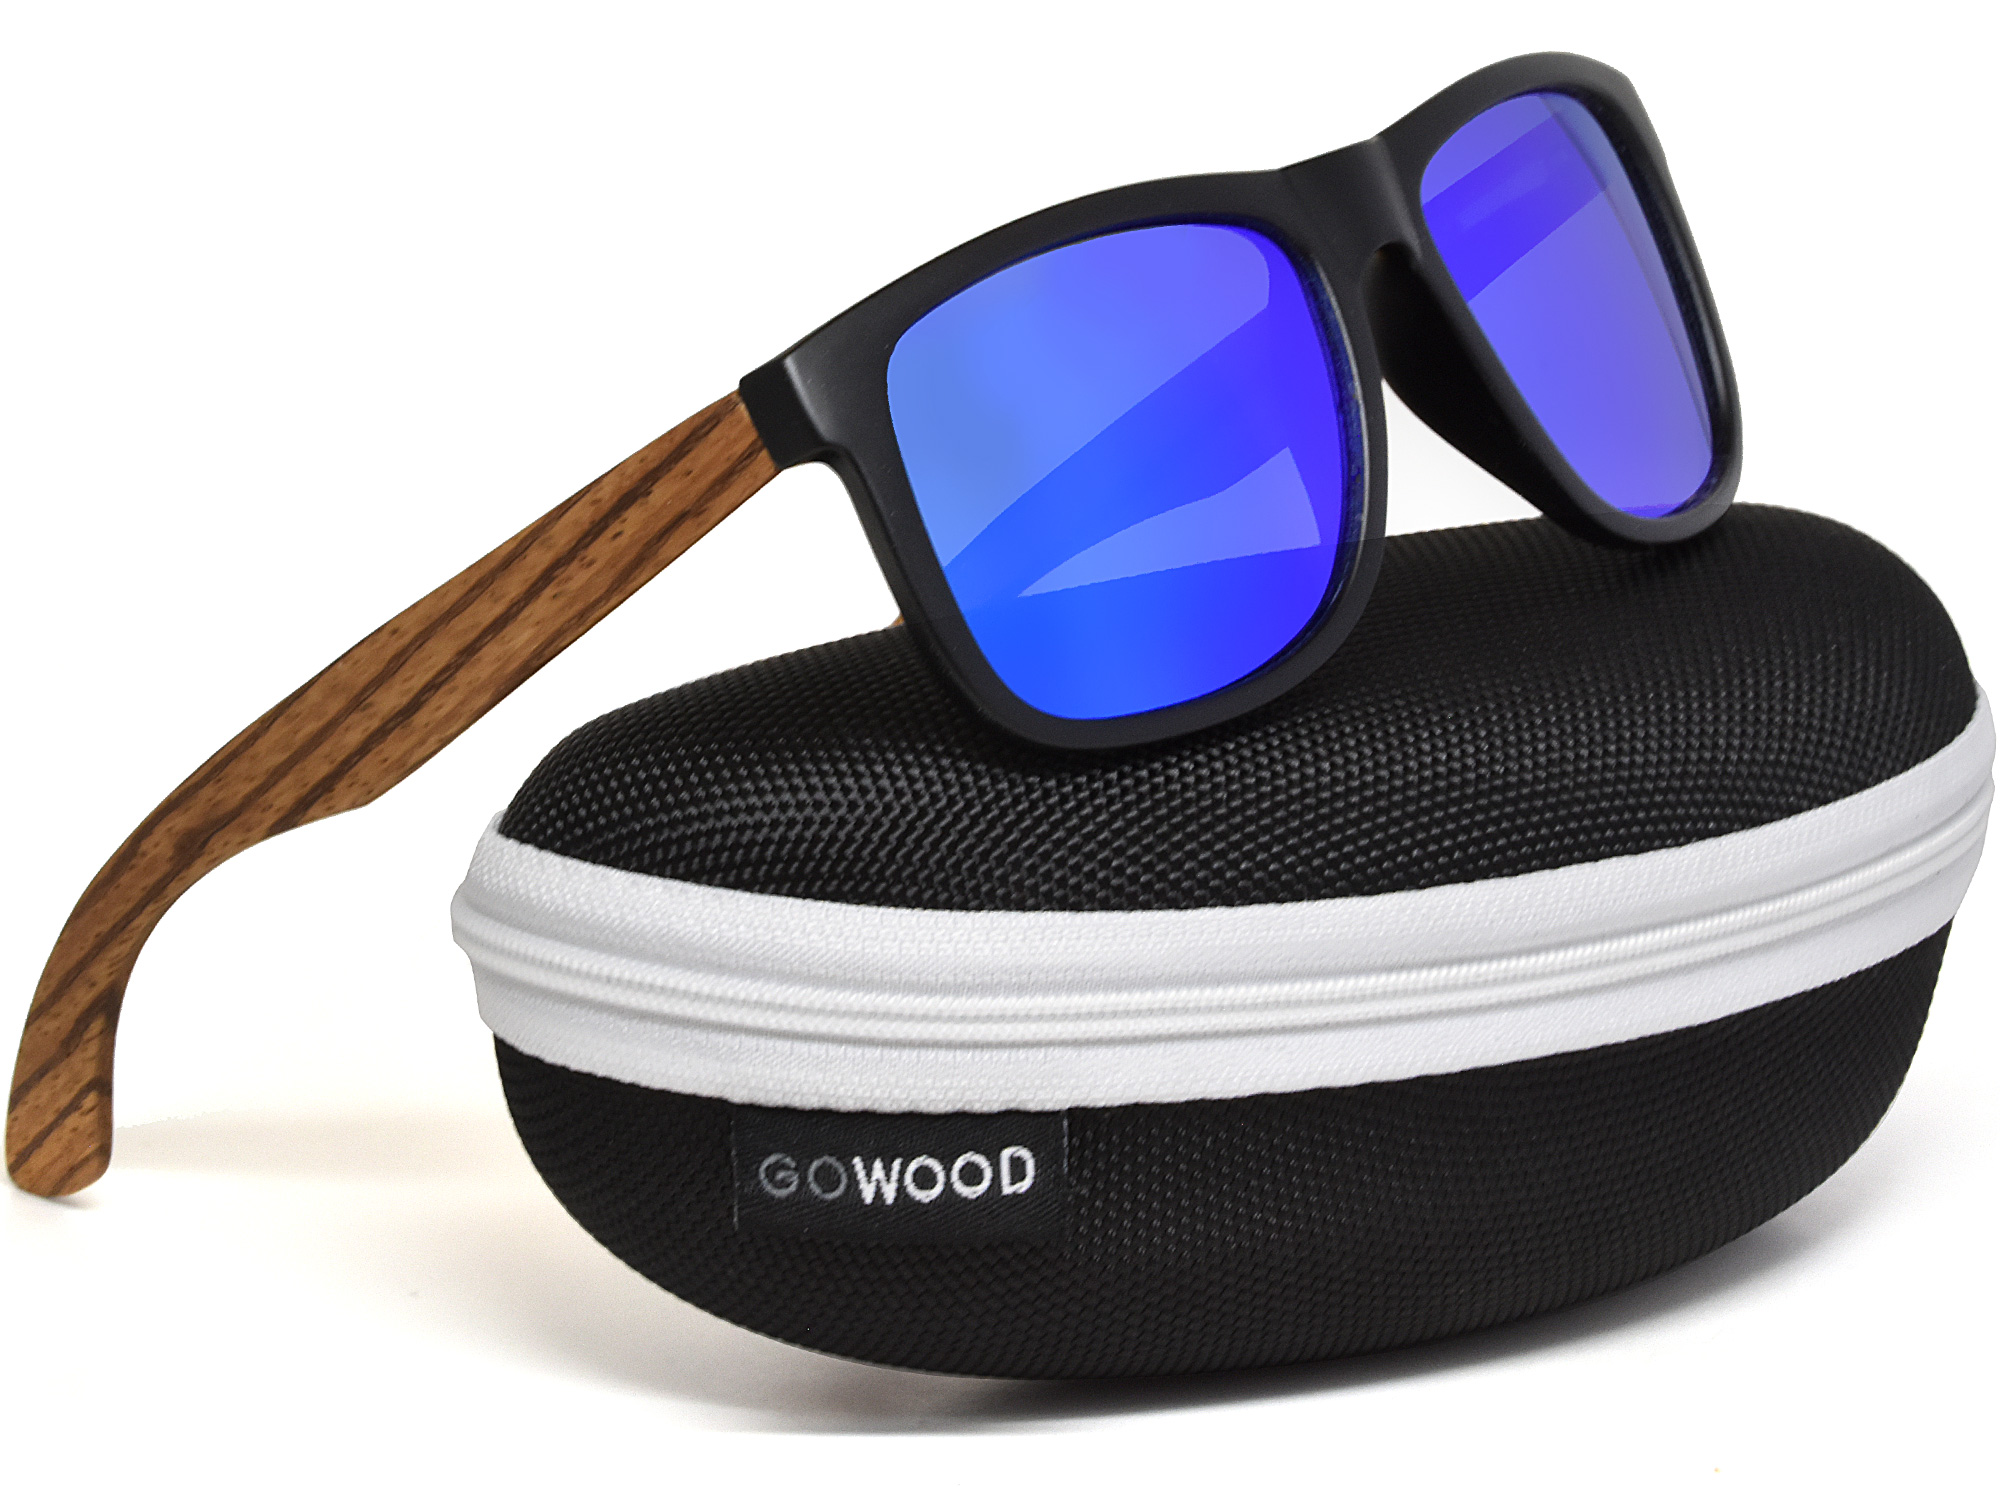 Square zebra wood sunglasses with blue mirrored polarized lenses in a zipper case